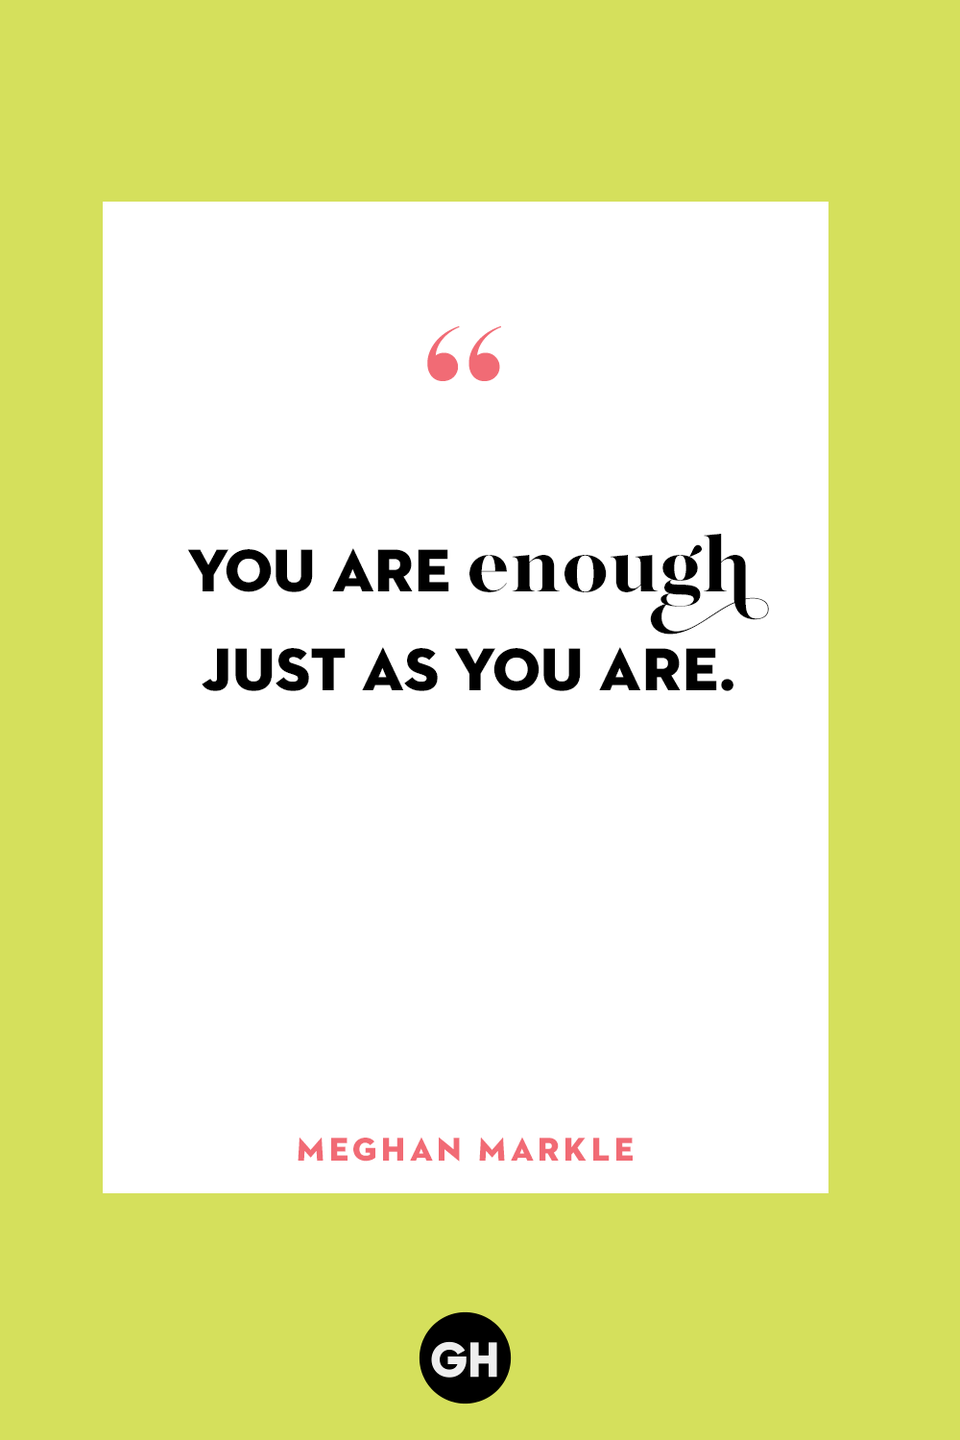 <p>You are enough just as you are.</p>